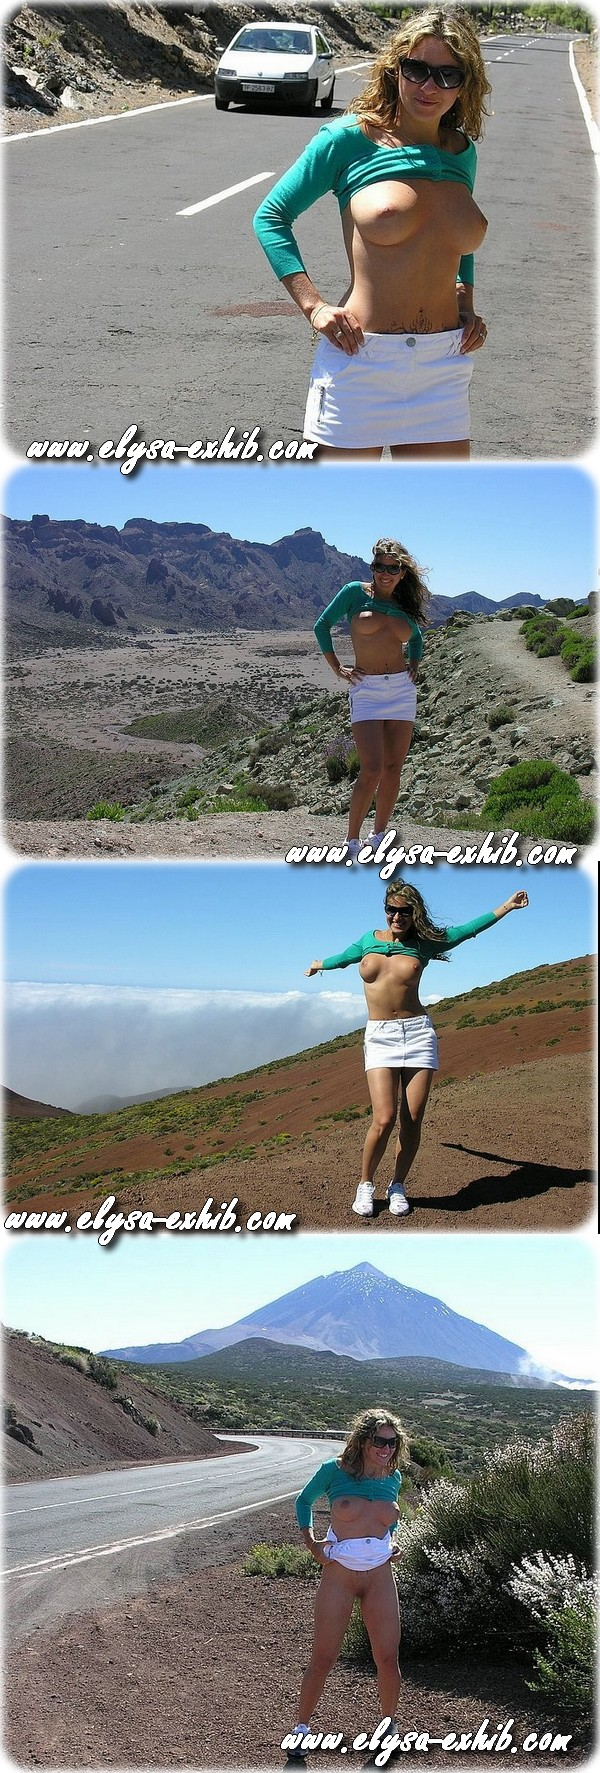 0017 Flashing in Tenerife (Teide)